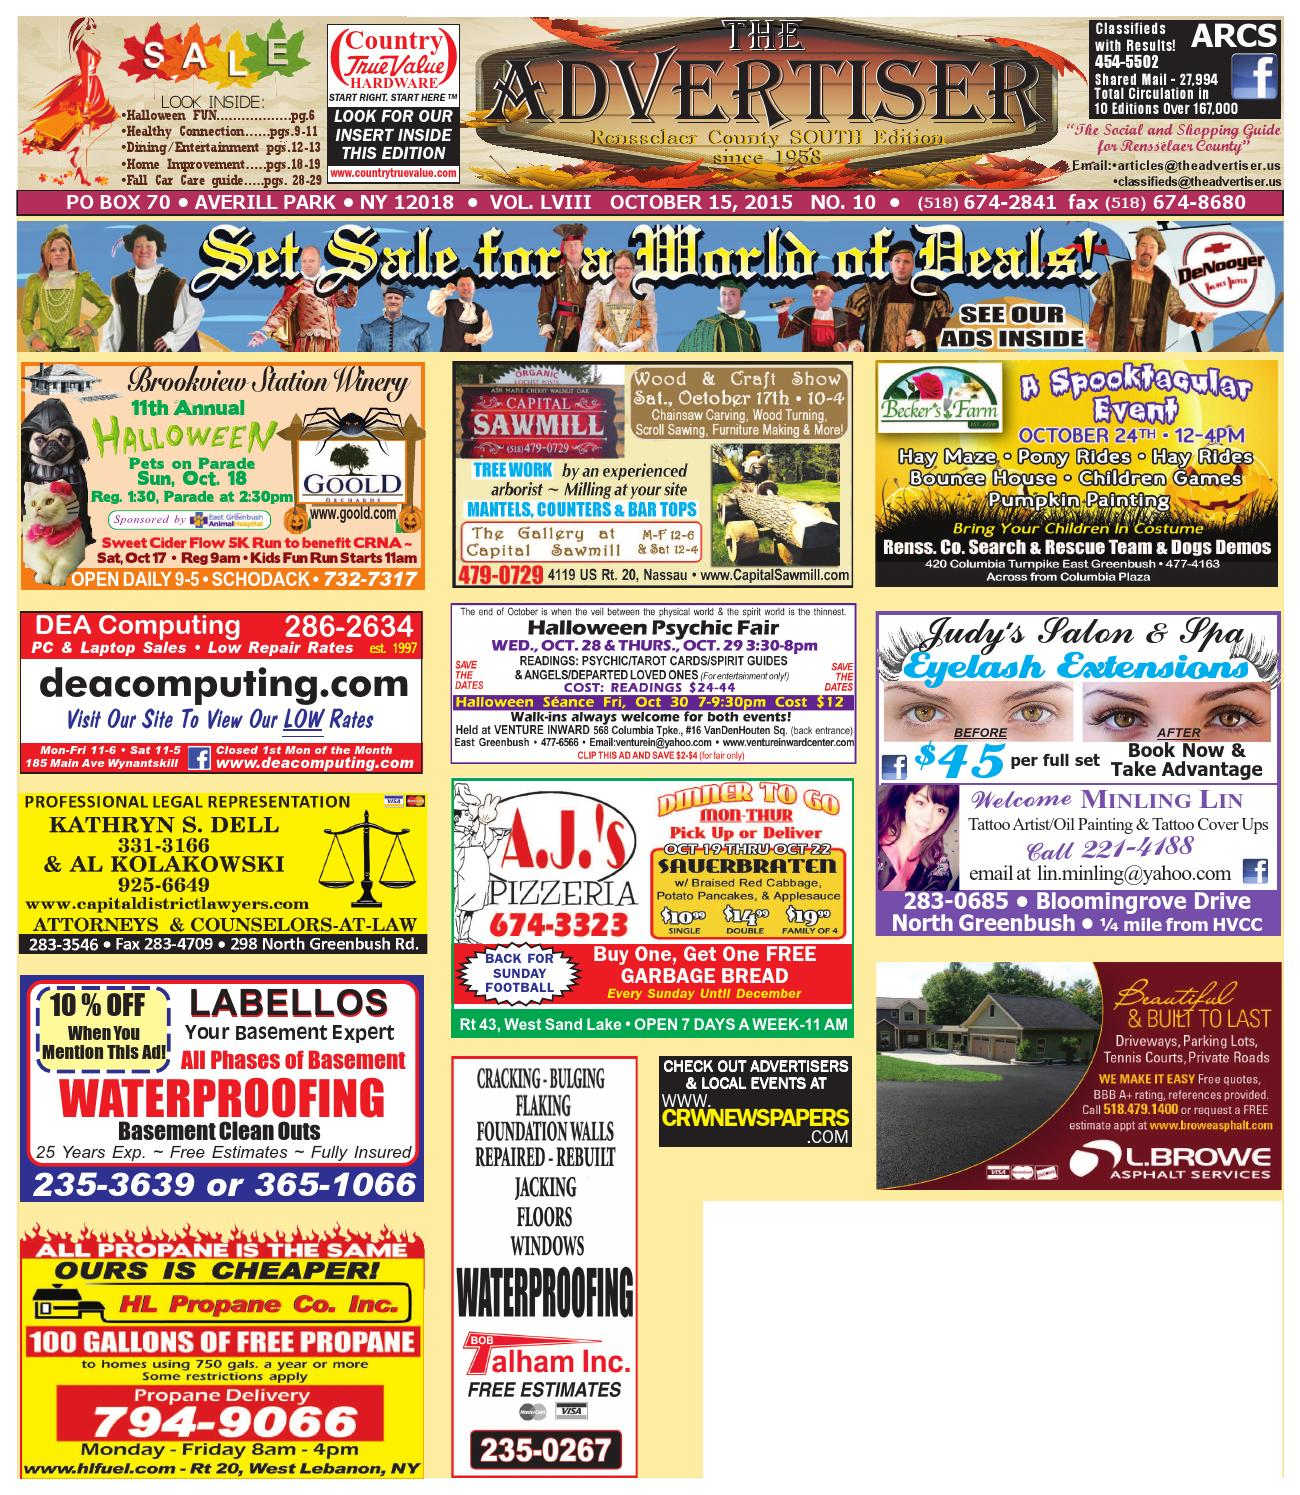 Advertiser South 101515 by Capital Region Weekly Newspapers - issuu 67a9bf017e8e9